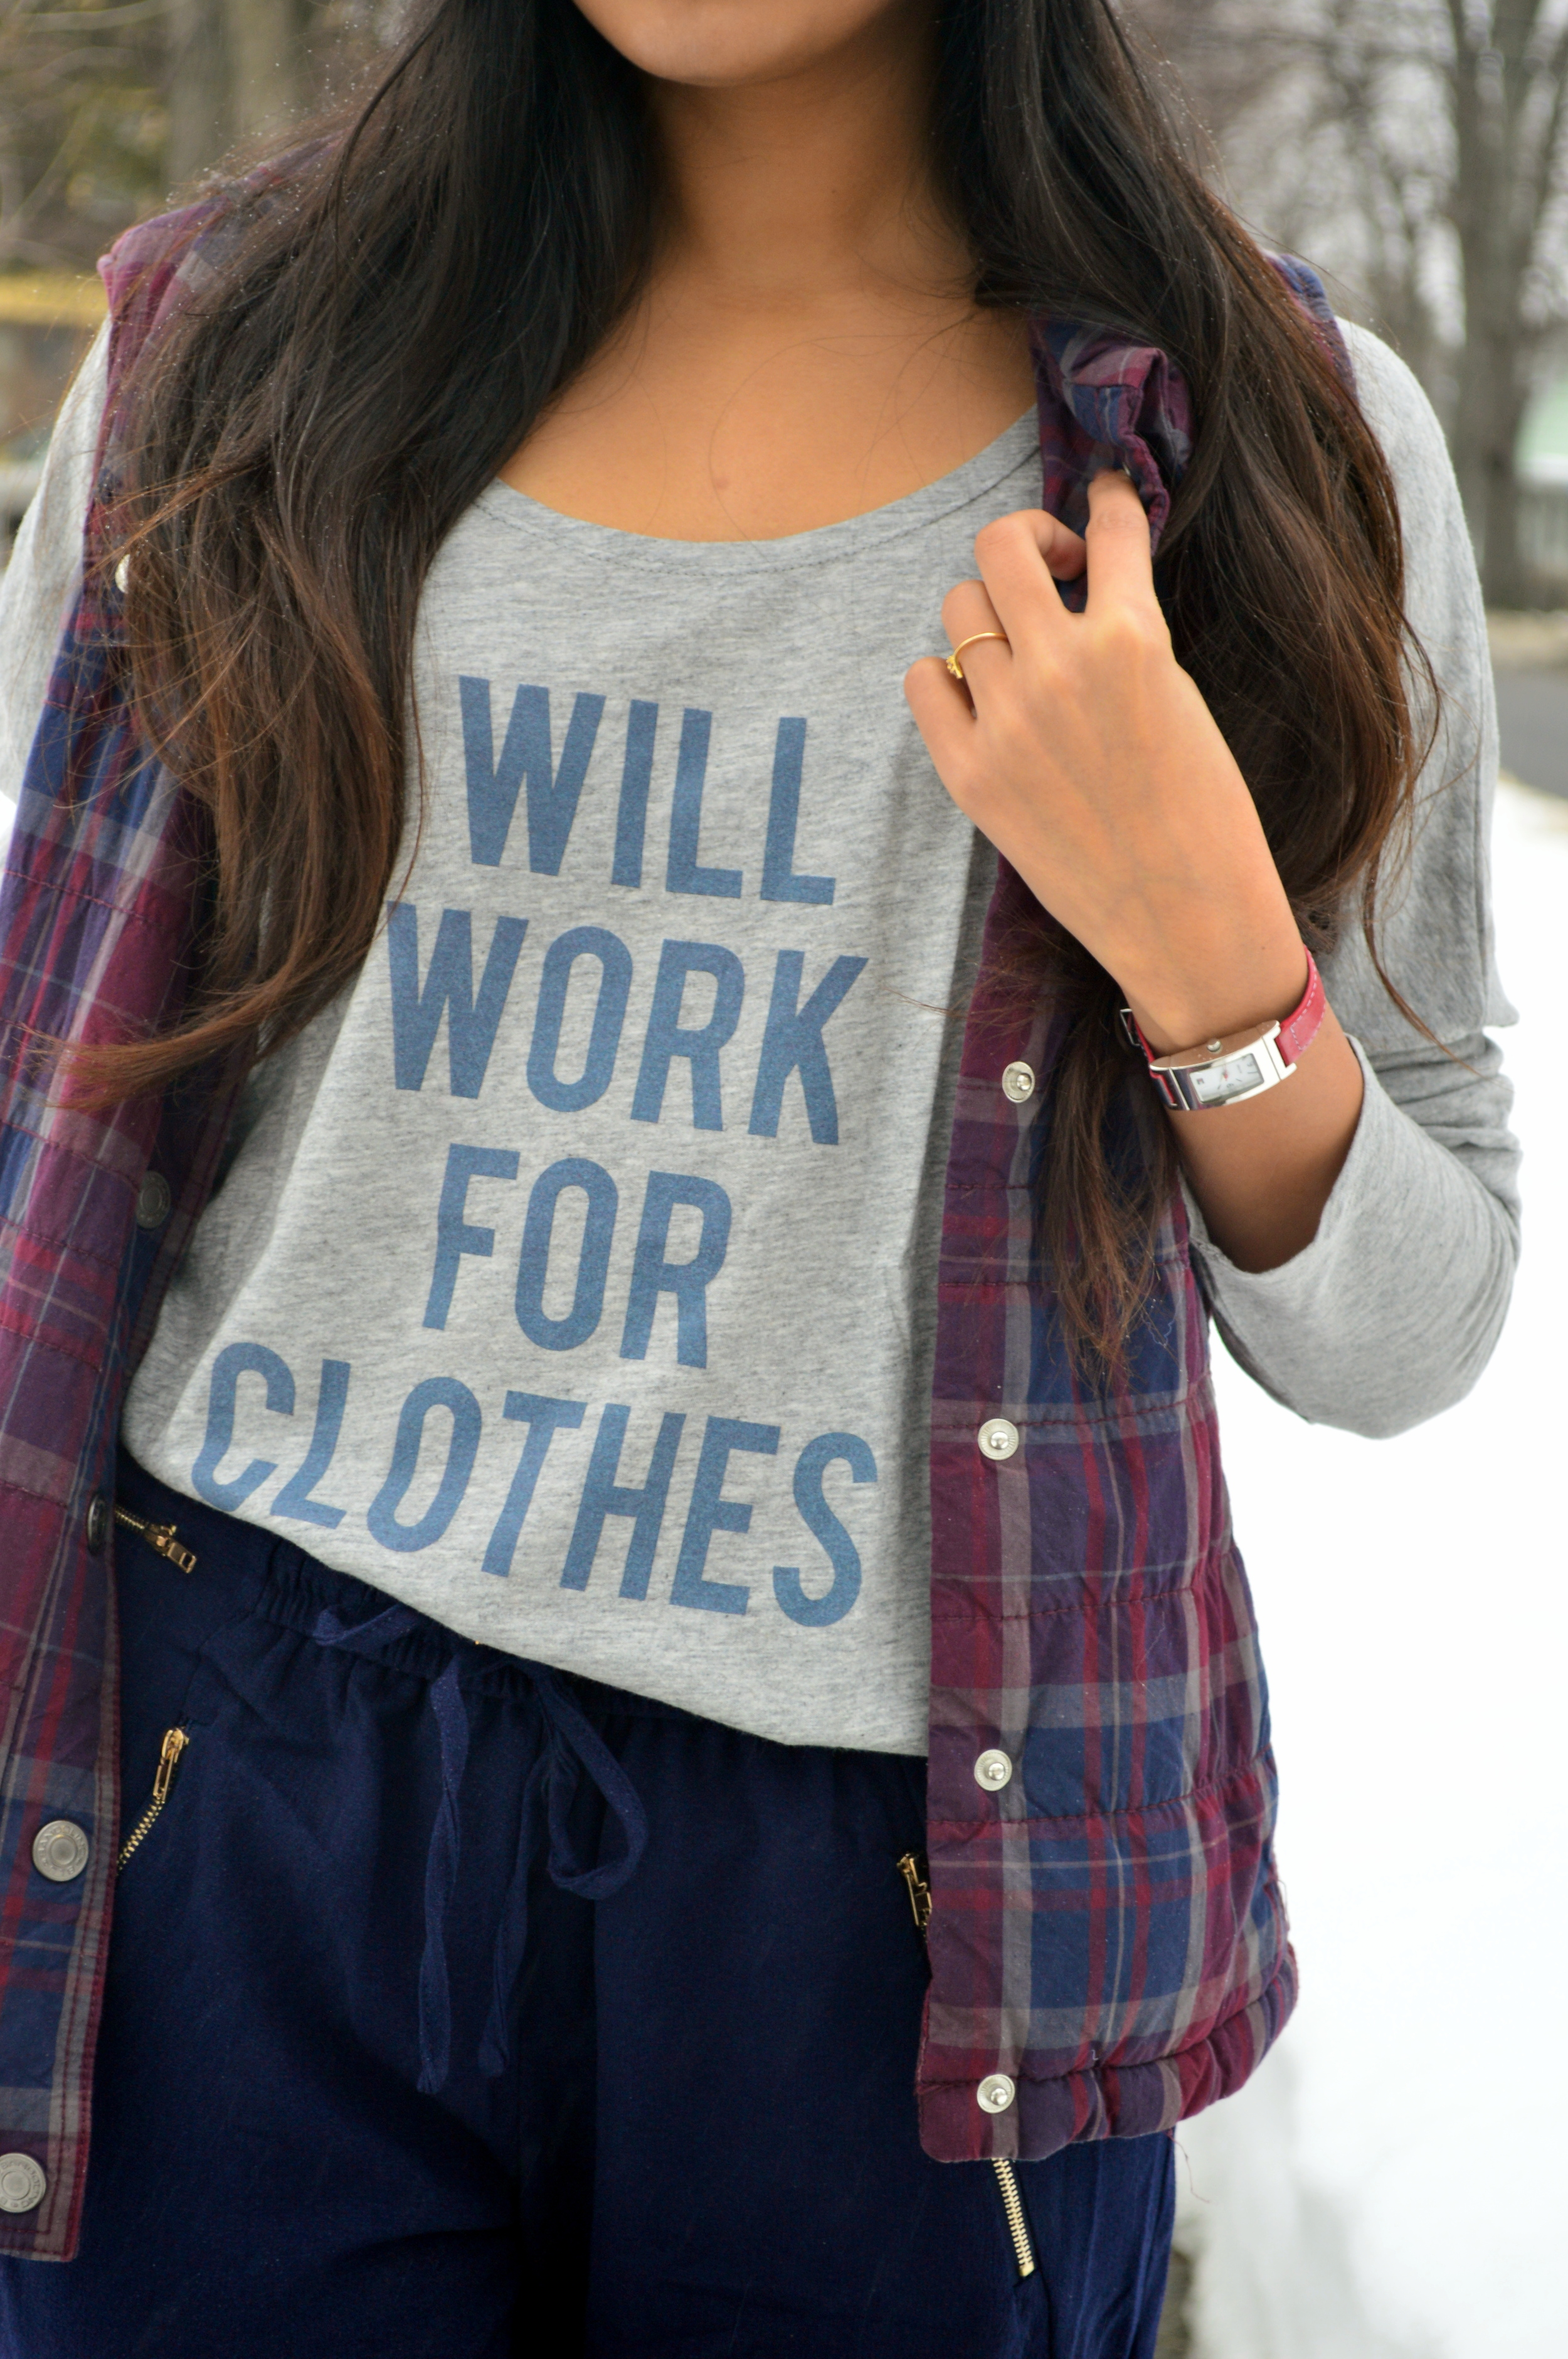 Will work for clothes 4